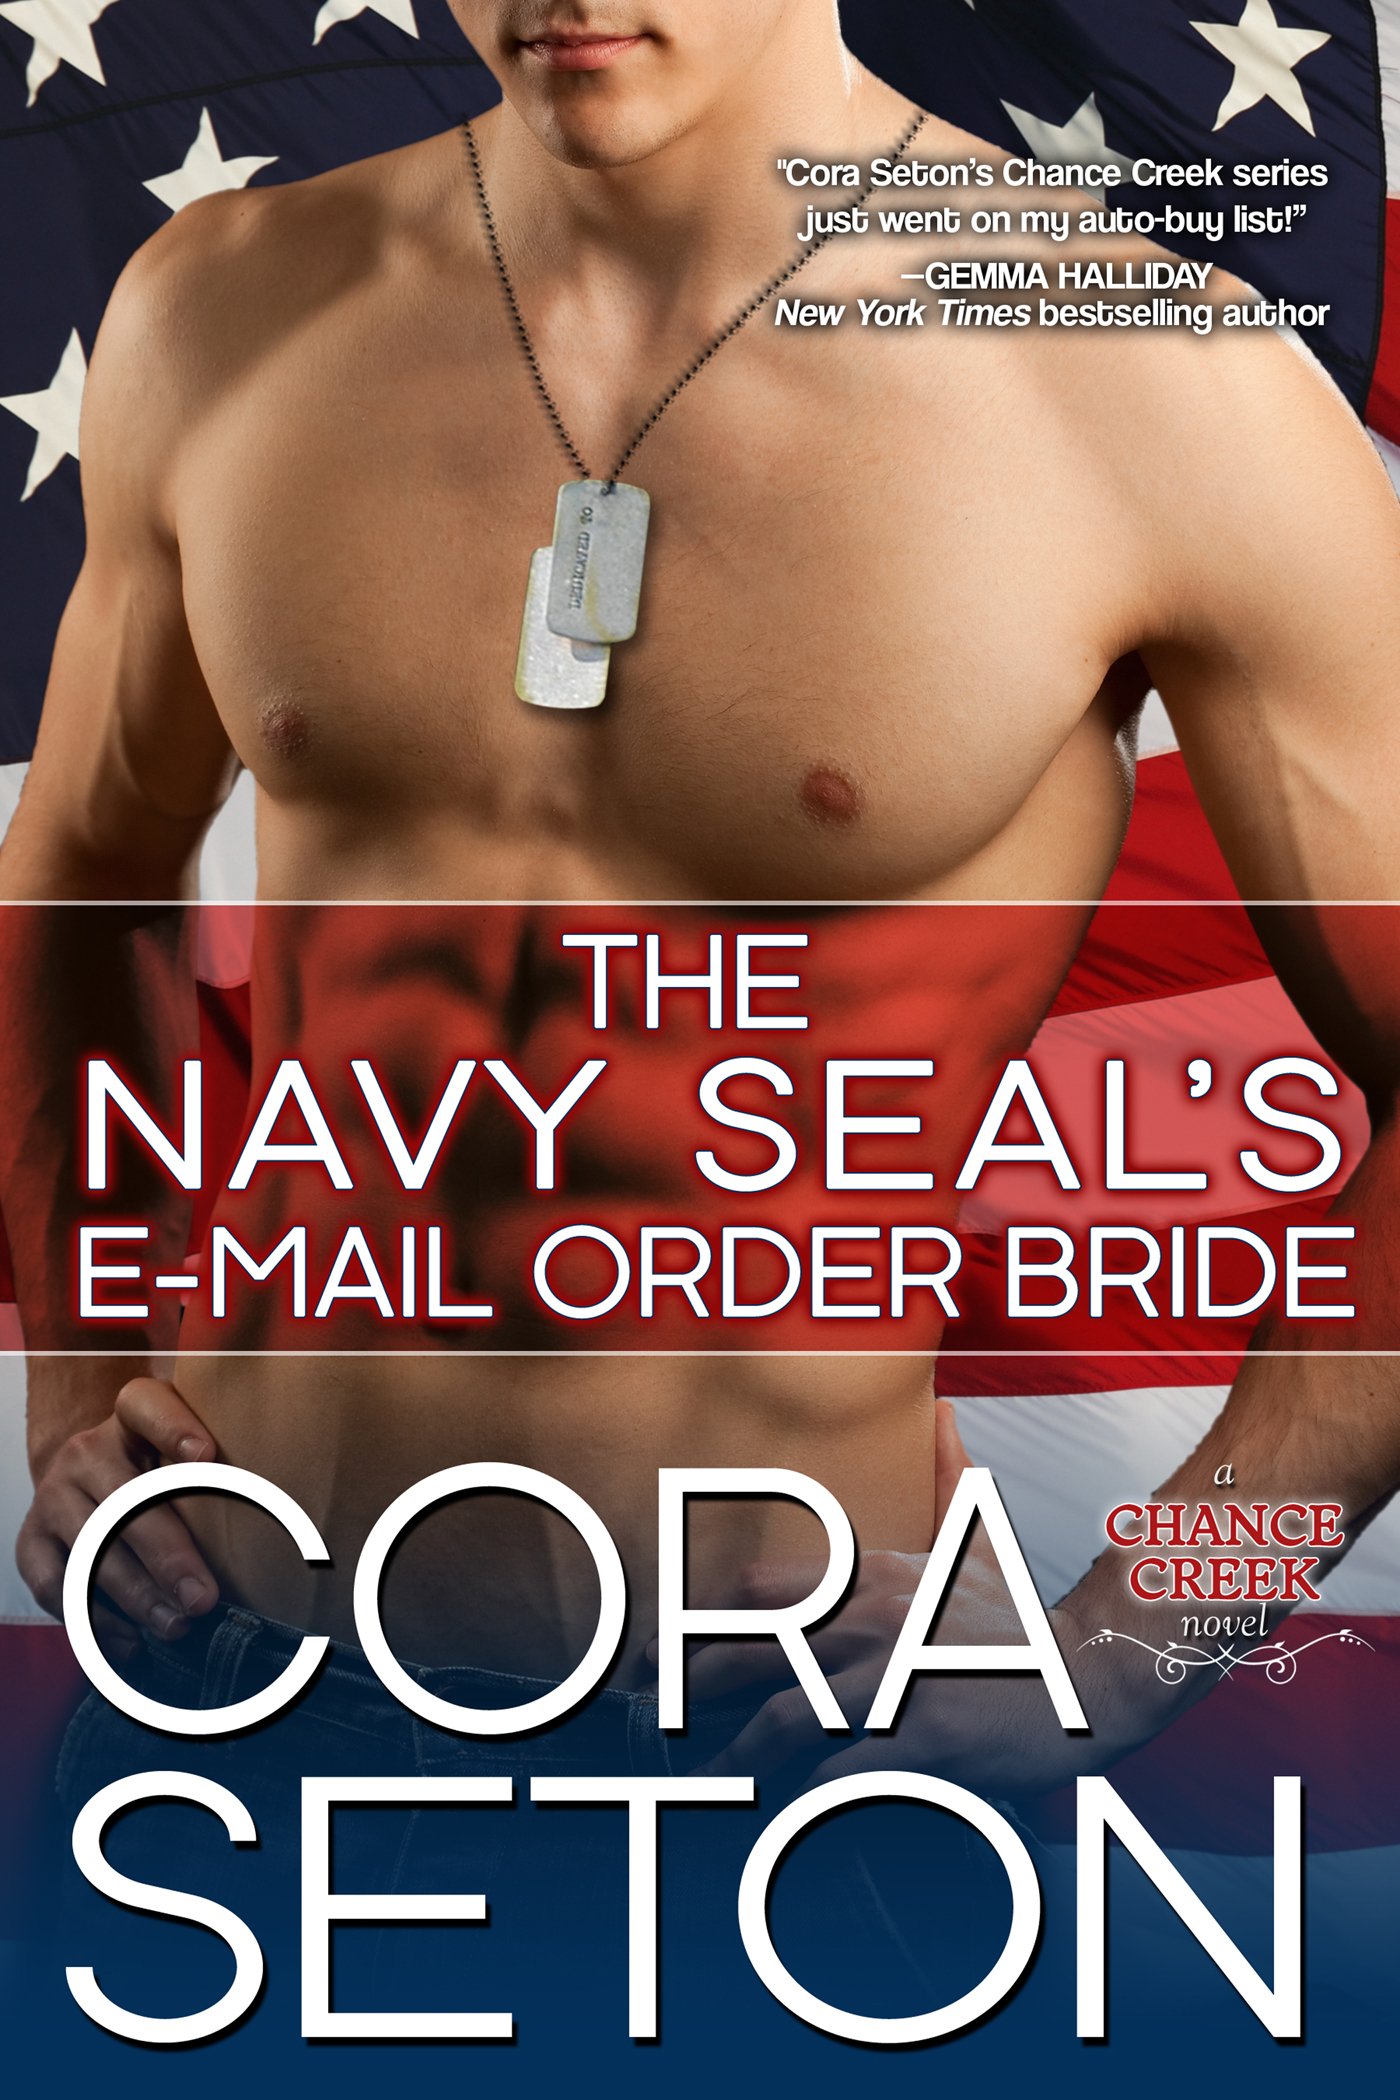 Cora Seton - The Navy SEAL's E-Mail Order Bride